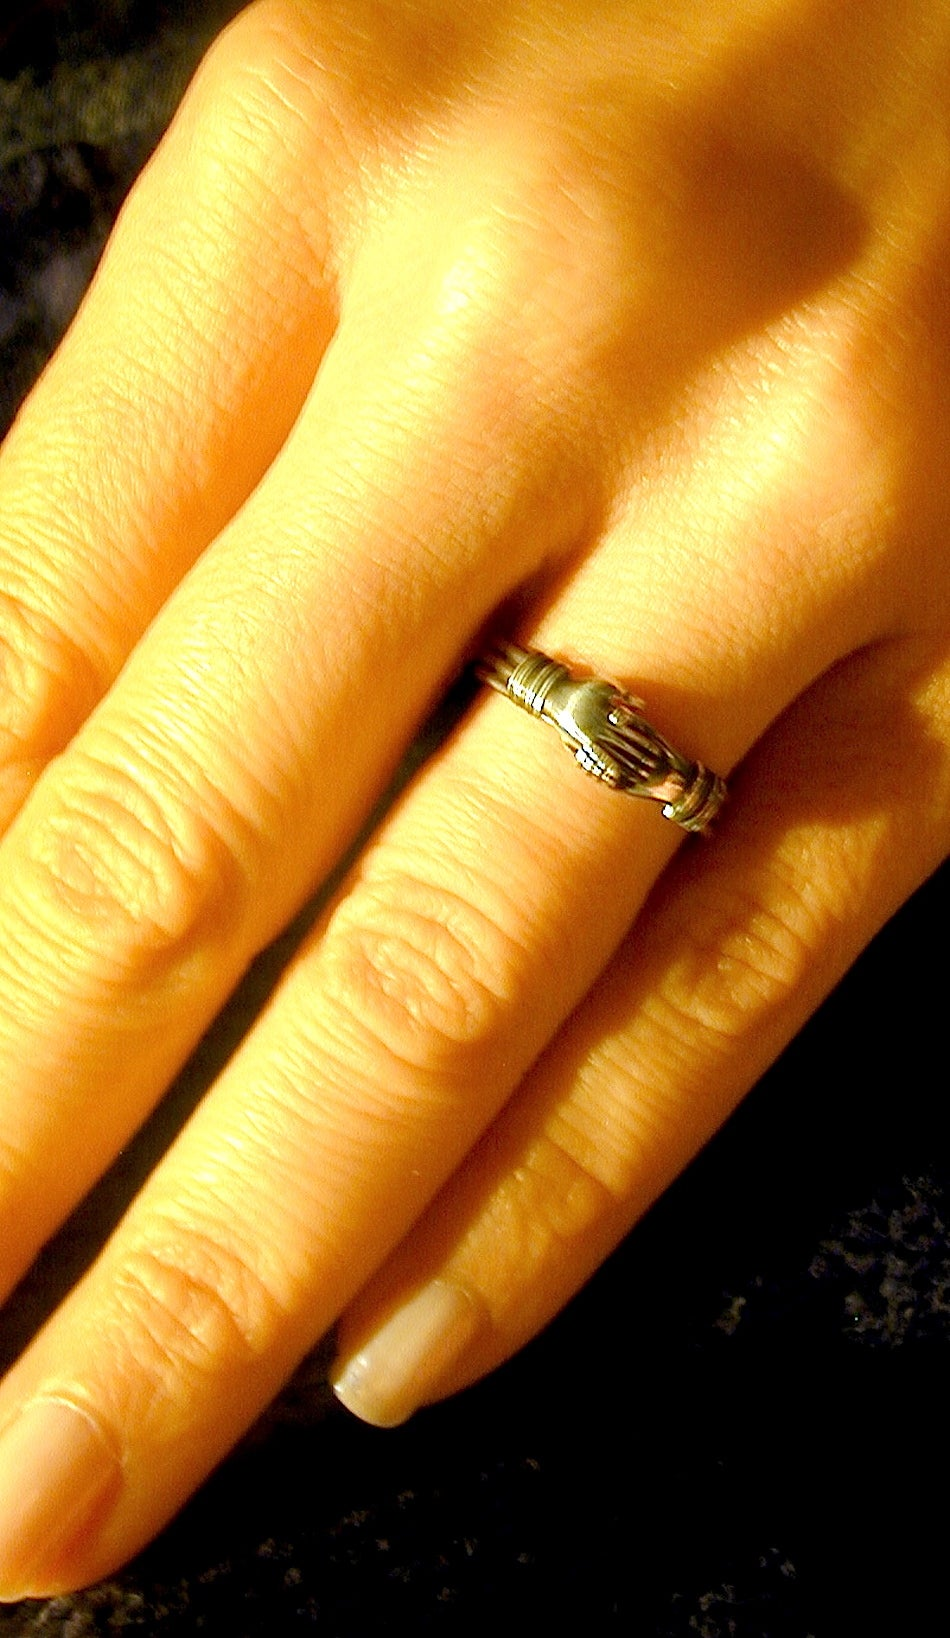 Antique Sterling Betrothal Ring with Clasped Hands over a heart 8